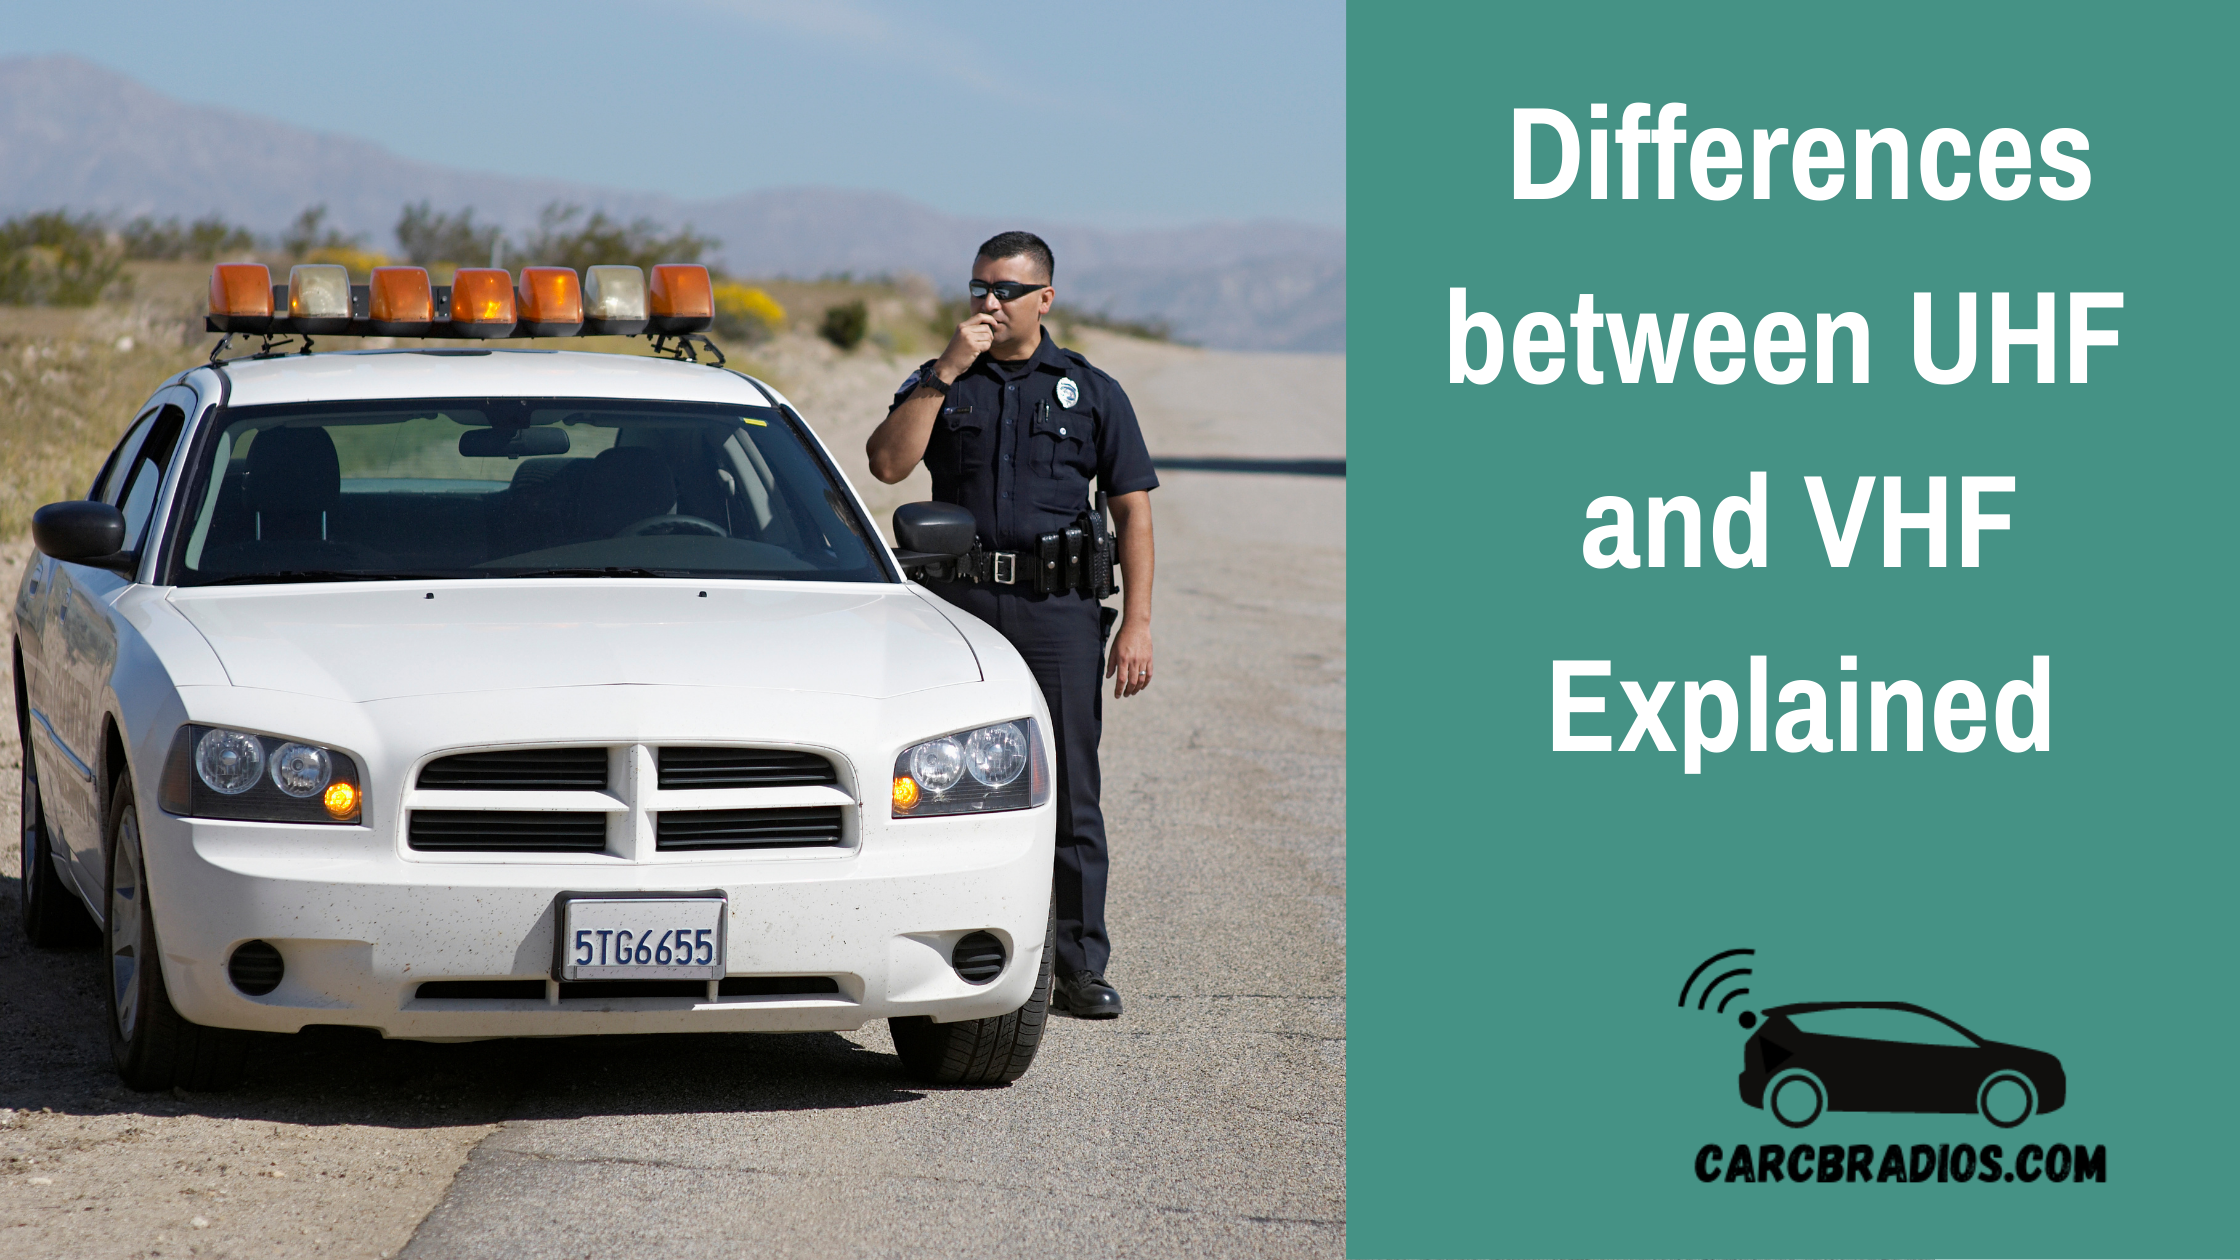 Differences between UHF and VHF Explained